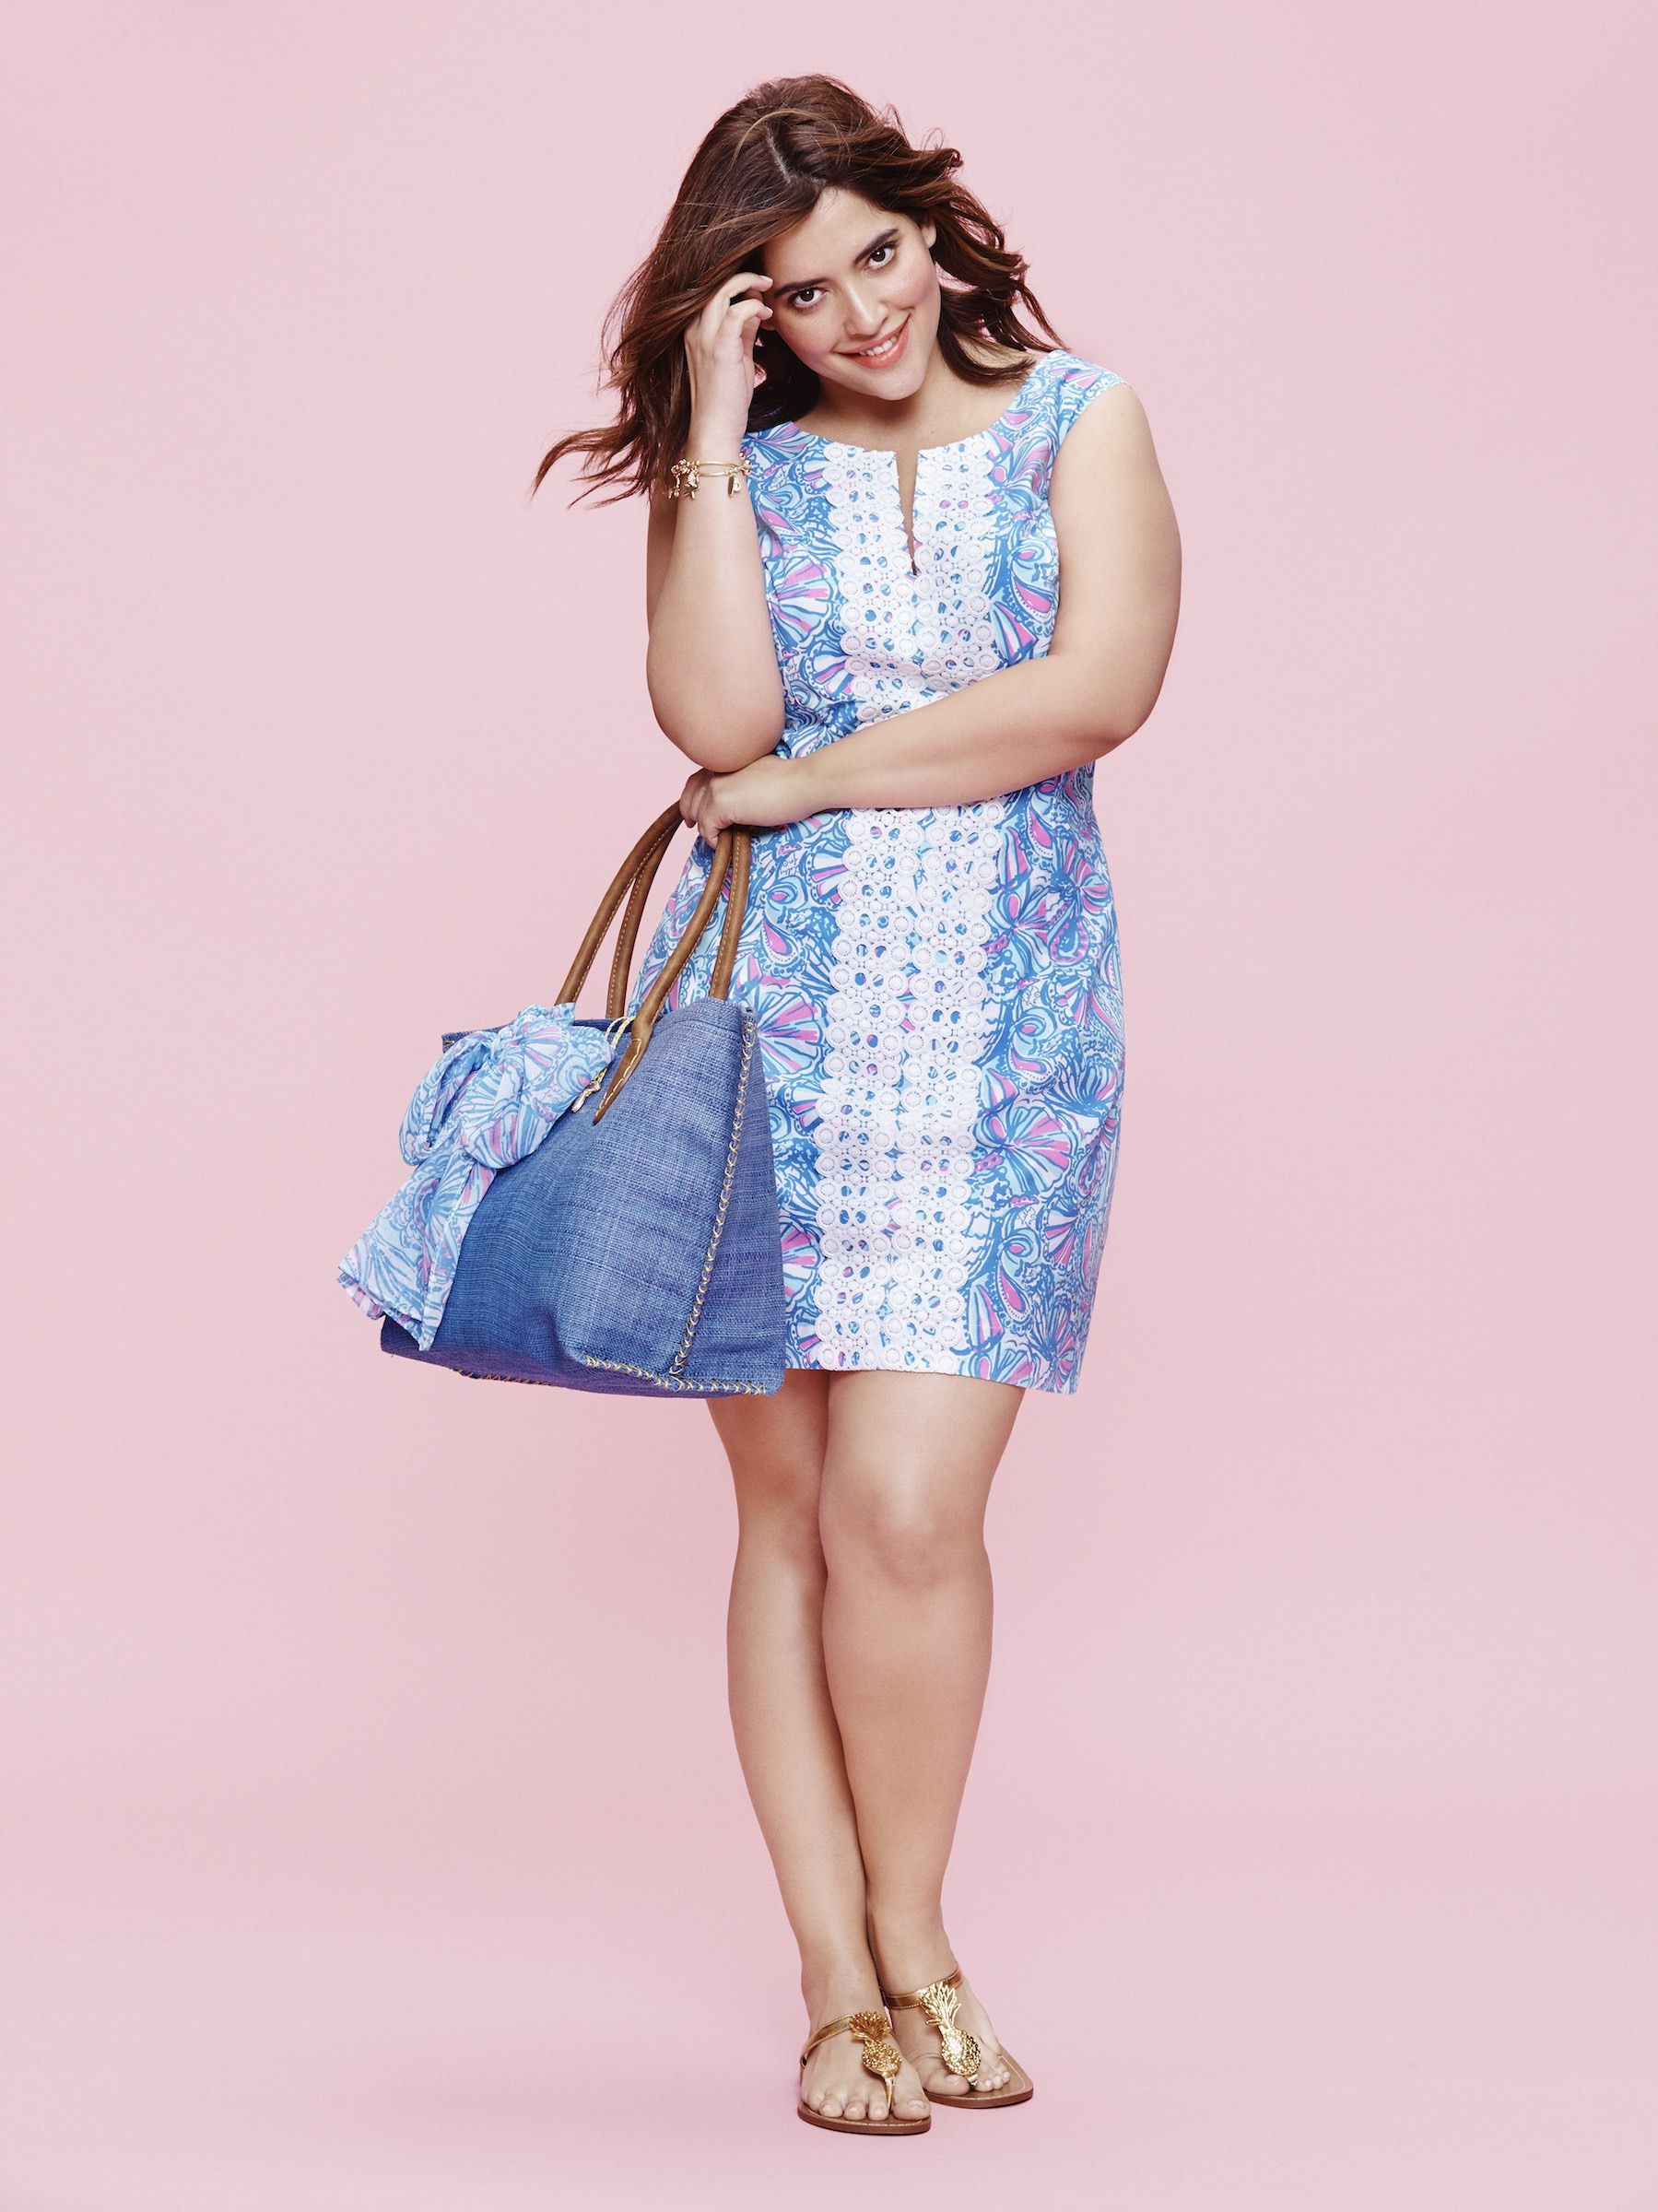 Lilly Pulitzer For Target Look Book With Plus Size Looks Lilly Pulitzer Target Fashion Style [ 2400 x 1799 Pixel ]